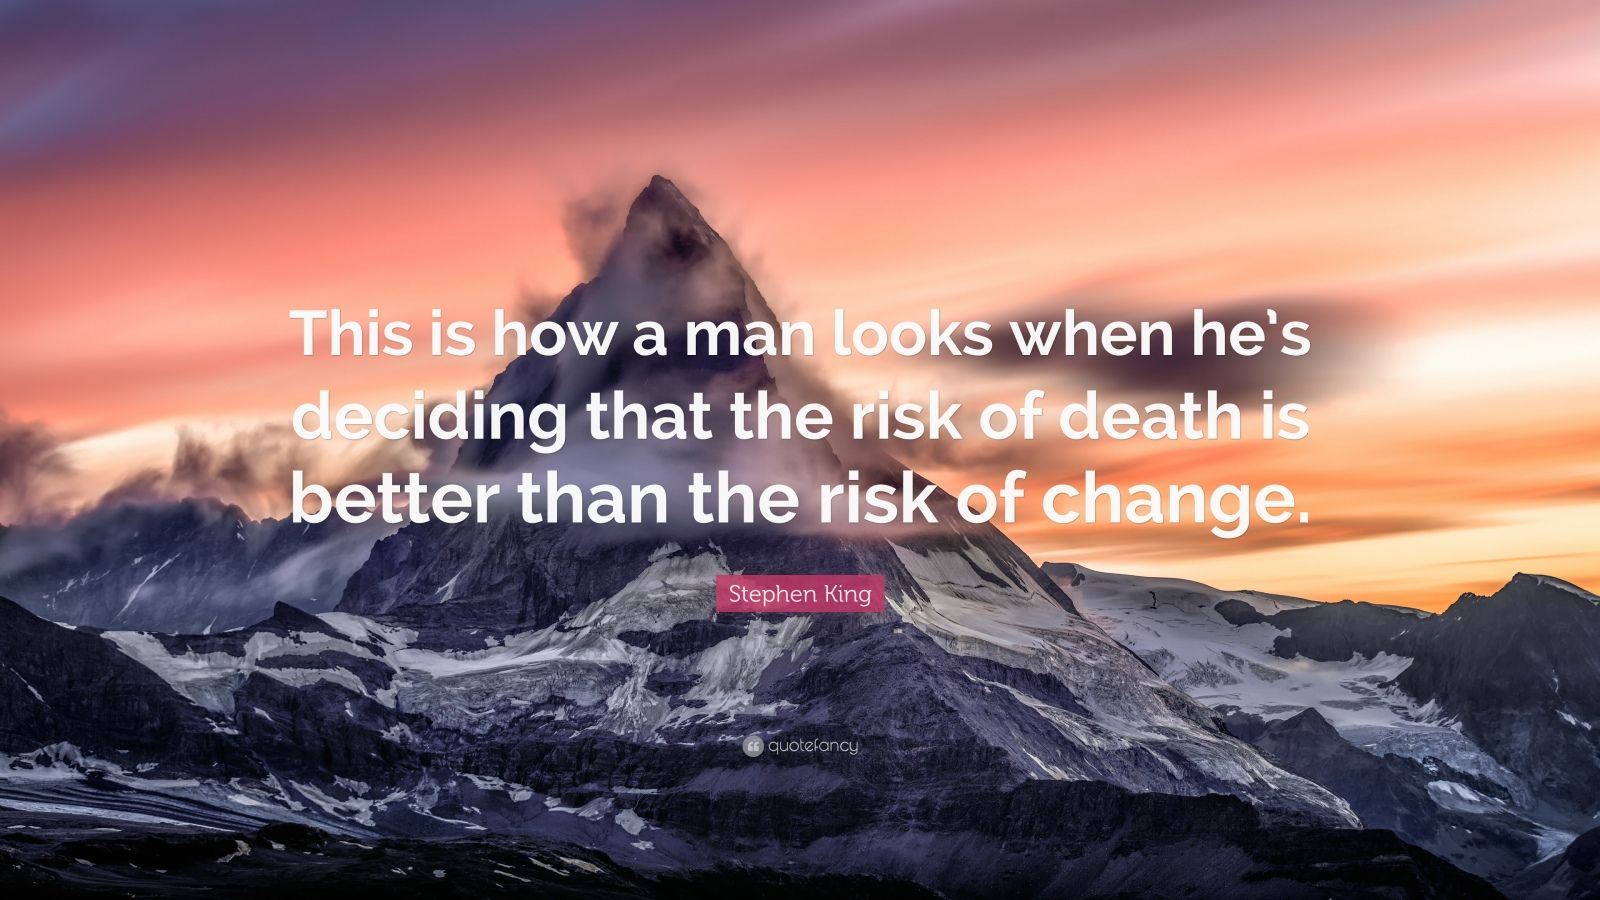 """Stephen King Quote: """"This is how a man looks when he's deciding that the risk of death is better than the risk of change."""""""